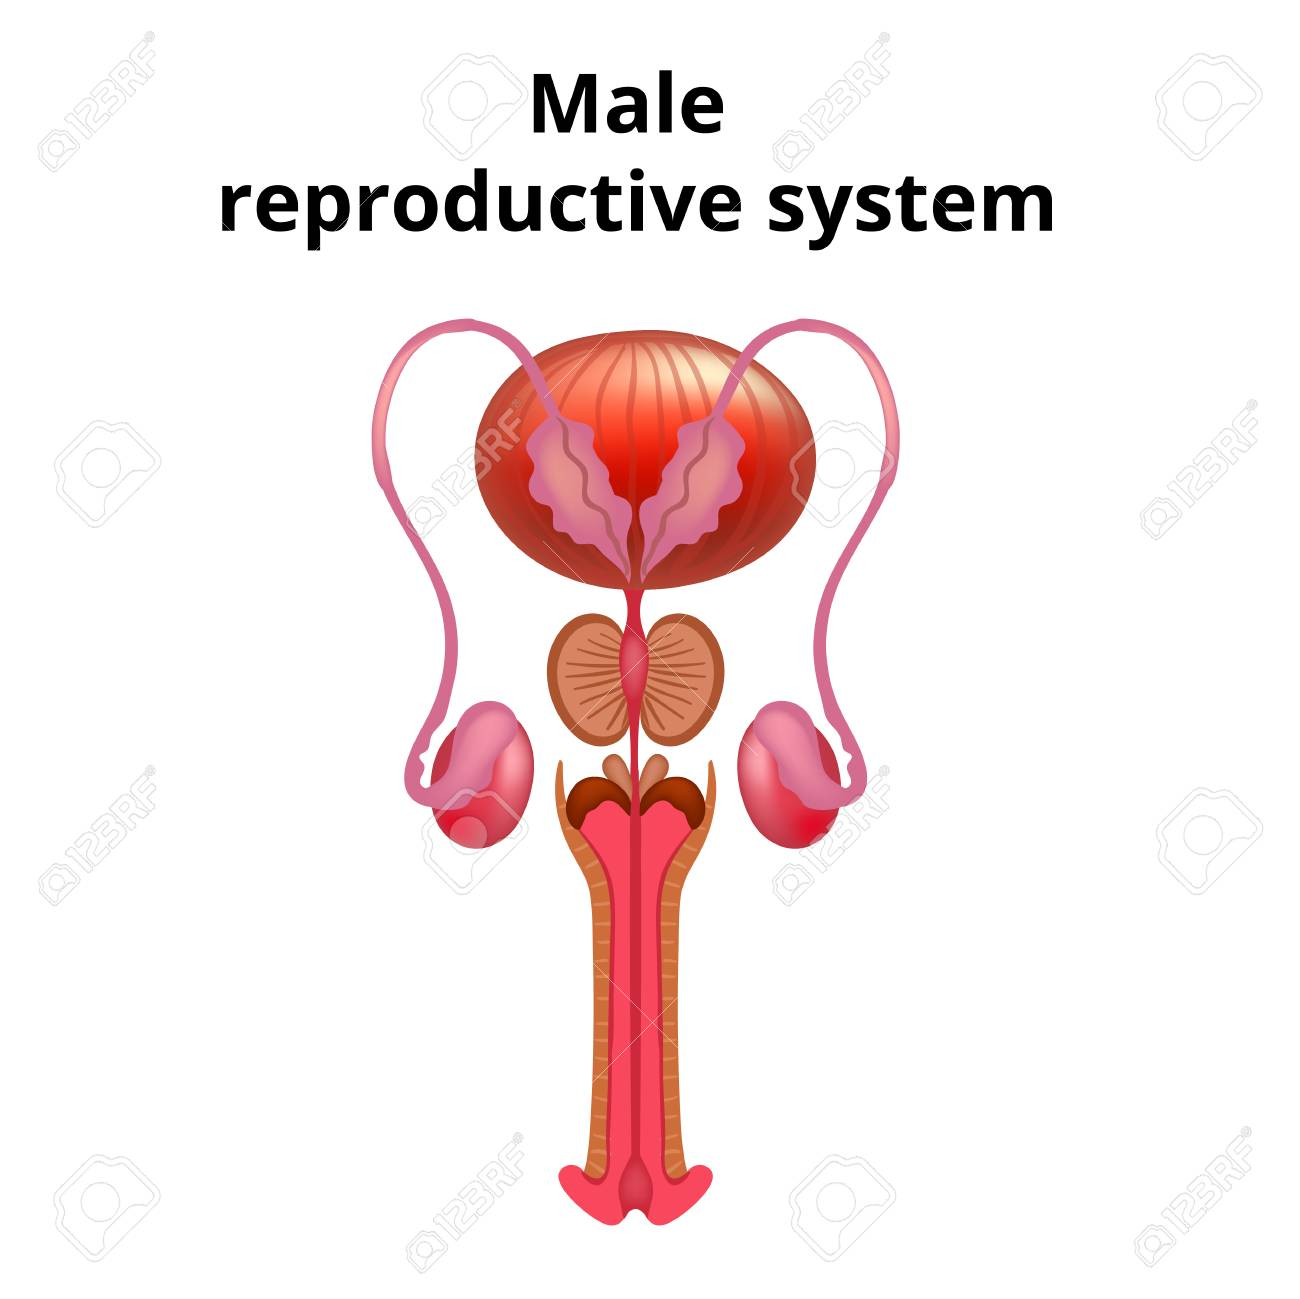 Vector Illustration Of Male Reproductive System Anatomy Royalty